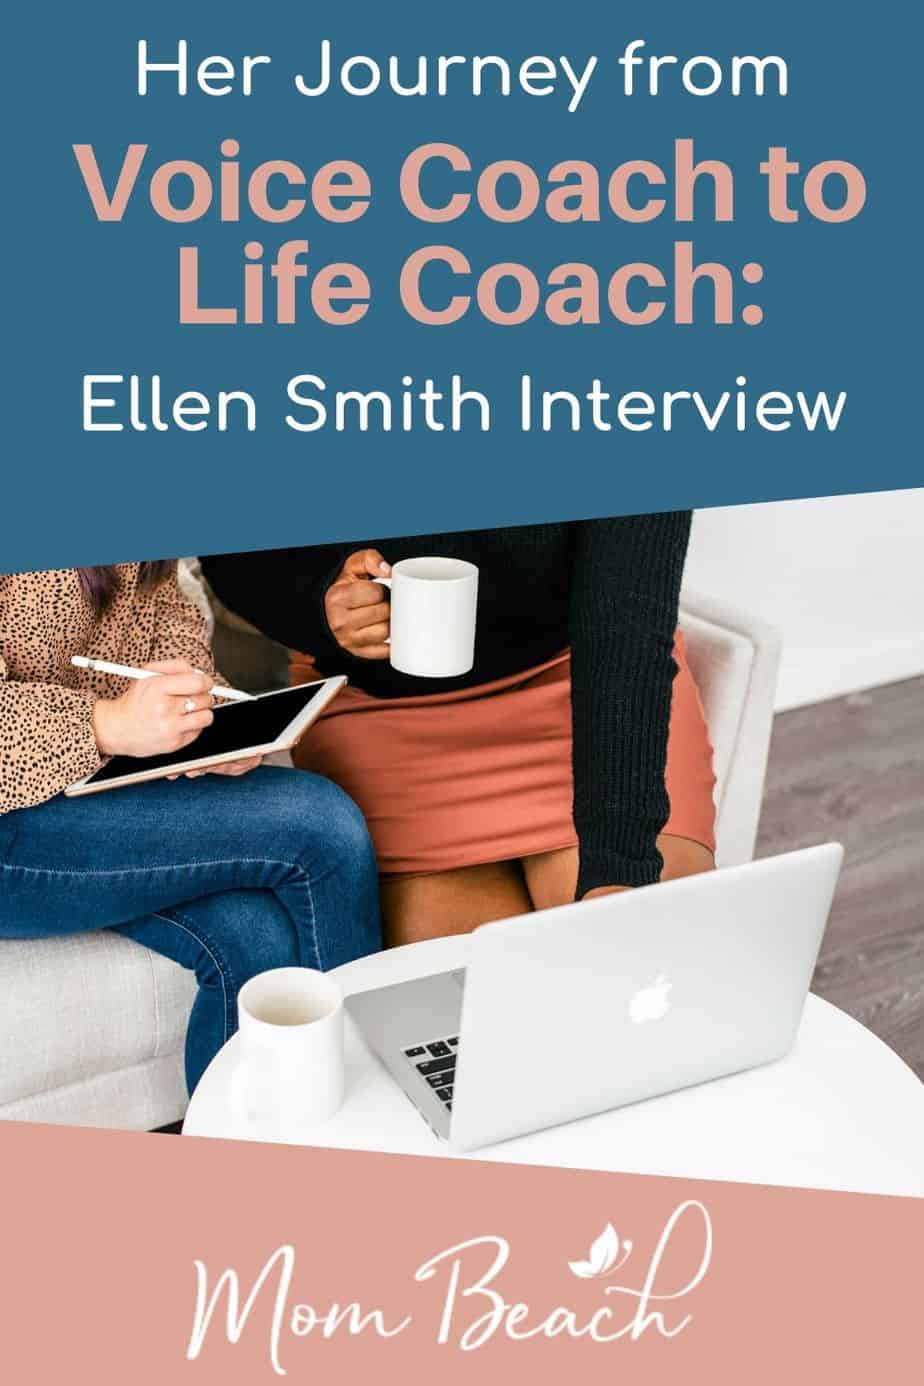 Ellen Smith is a voice coach and a life coach that wants to help women everywhere. She has several years of life coaching experience. We are thrilled to feature her as an Inspiring Mompreneur! Life coaching is a great job to do at home. If you are a stay at home mom, consider becoming a life coach! Make money from home by working as a life coach now. #inspiringmompreneur #mompreneur #lifecoach #voicecoach #workathome #onlinejobsfromhome #stayathomemomjobs